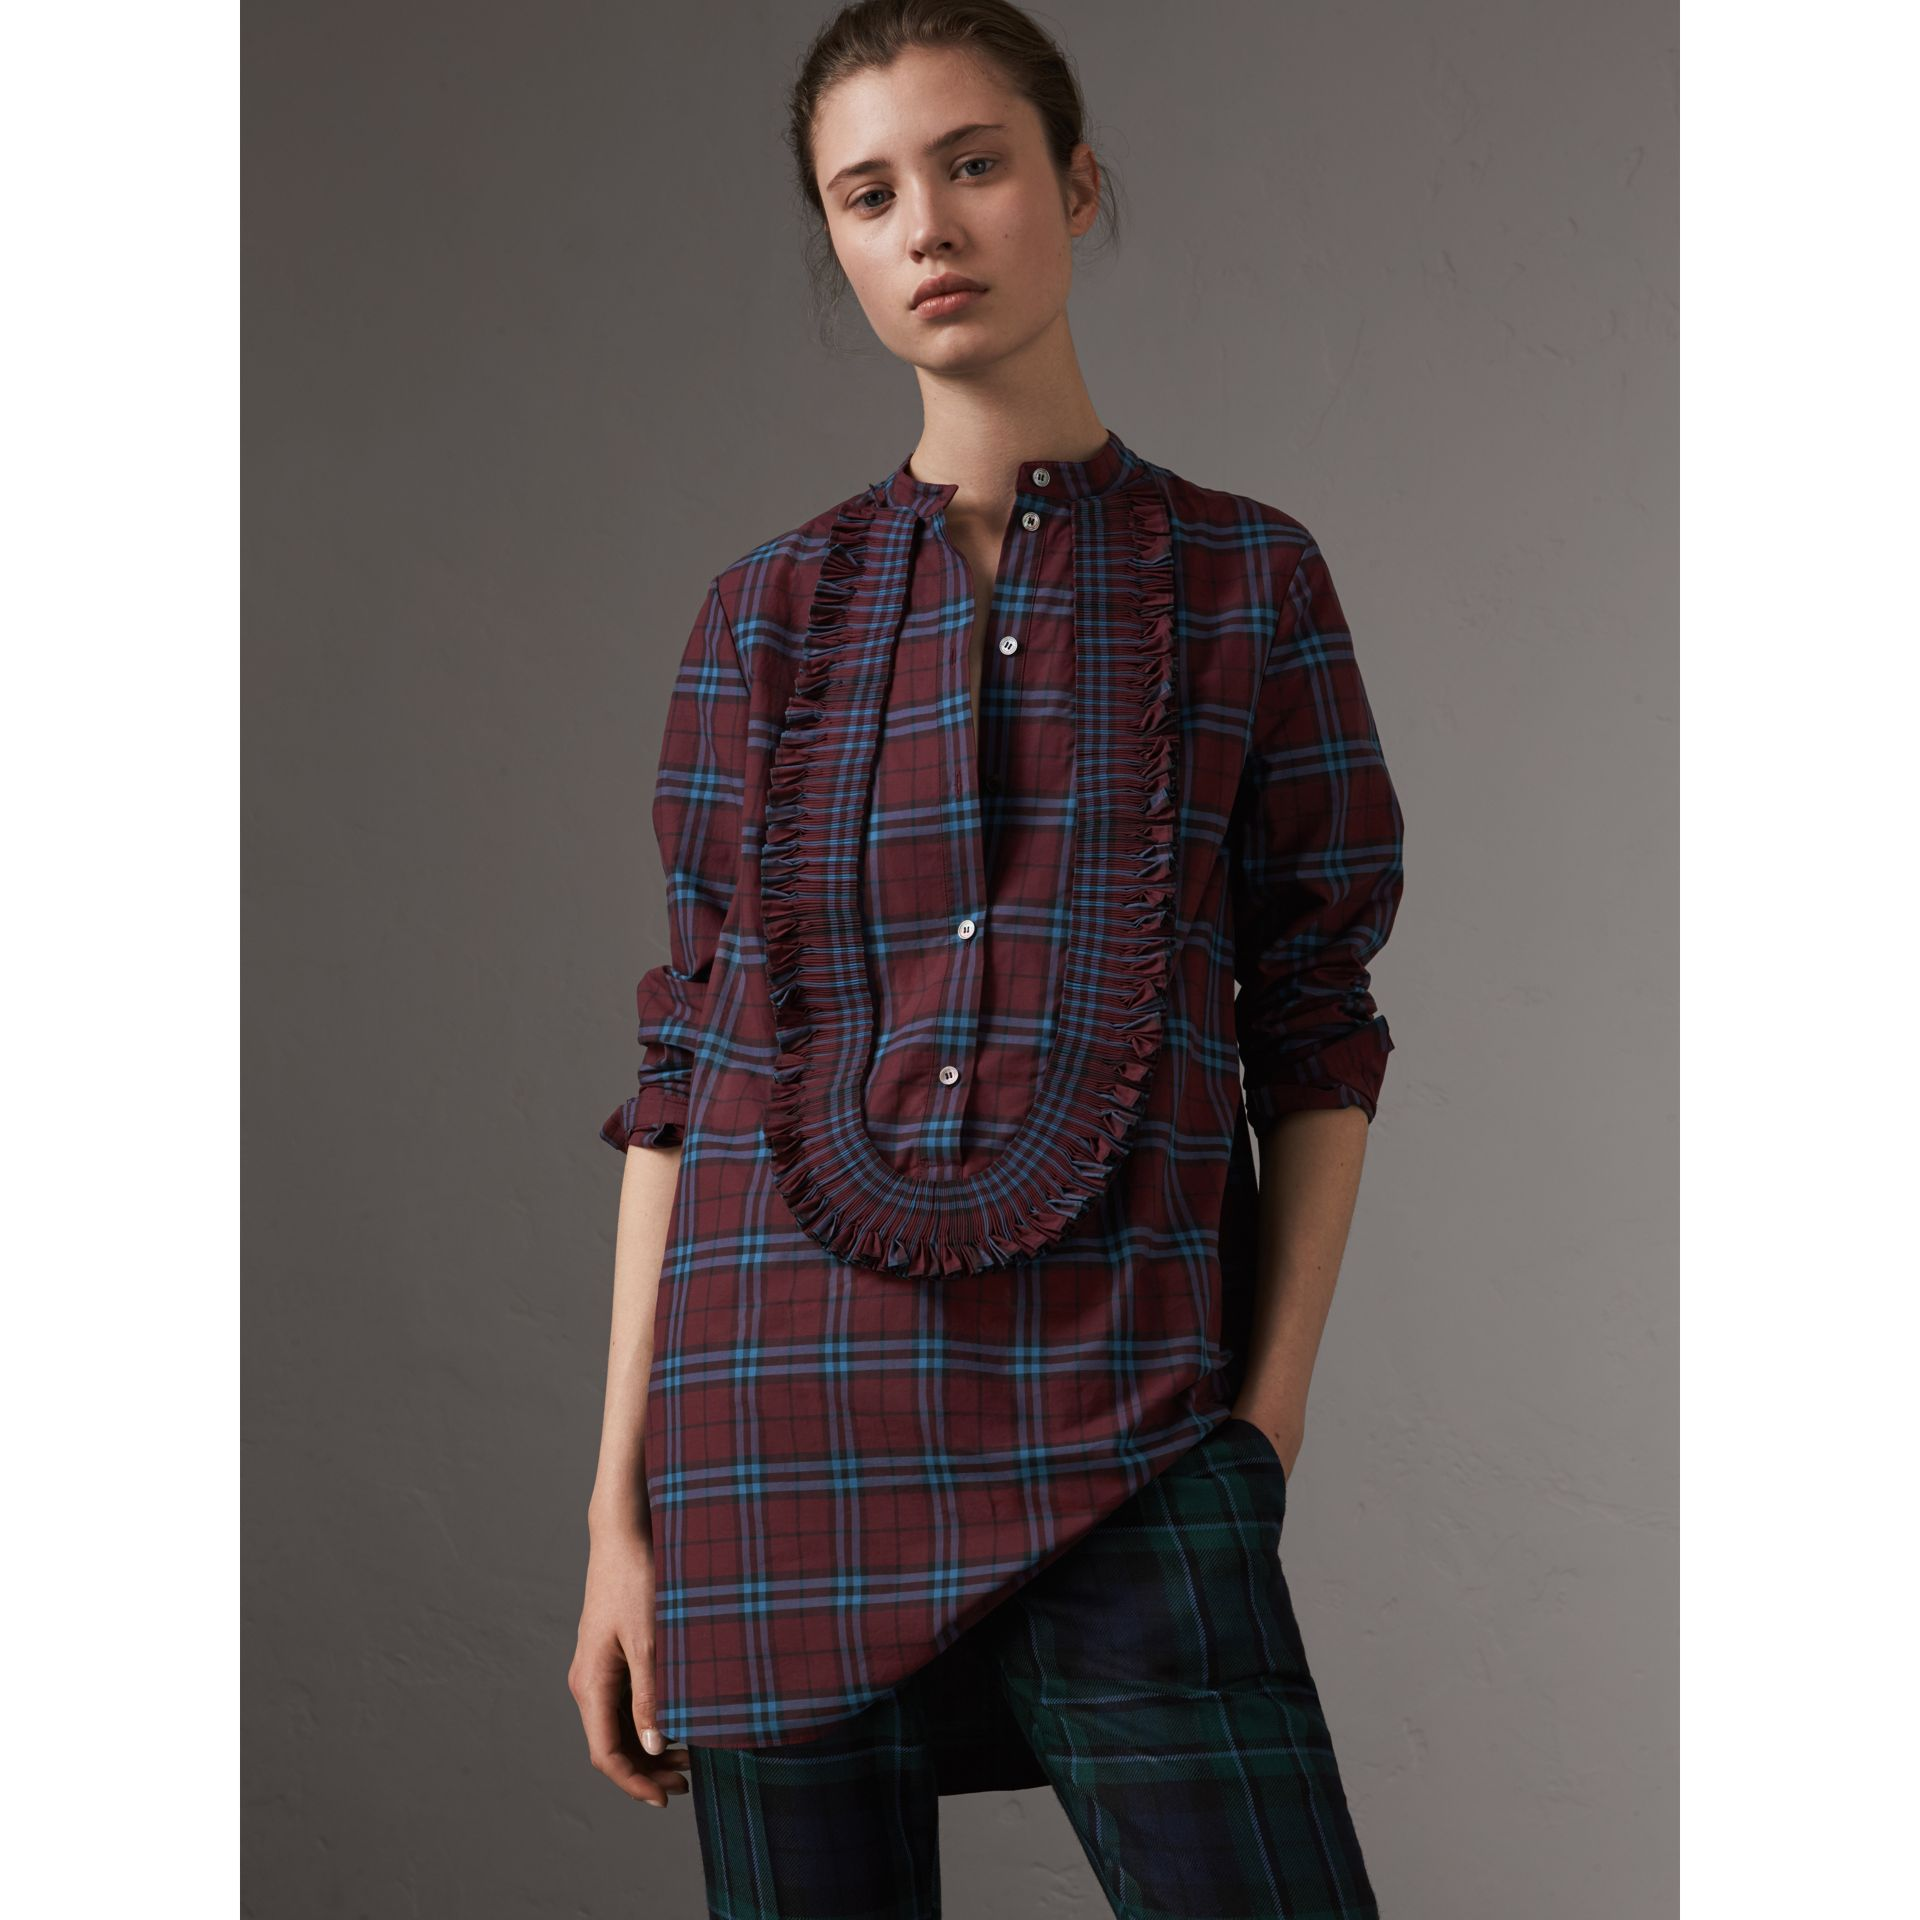 Ruffle Detail Check Cotton Tunic Shirt in Crimson Red - Women | Burberry United Kingdom - gallery image 1